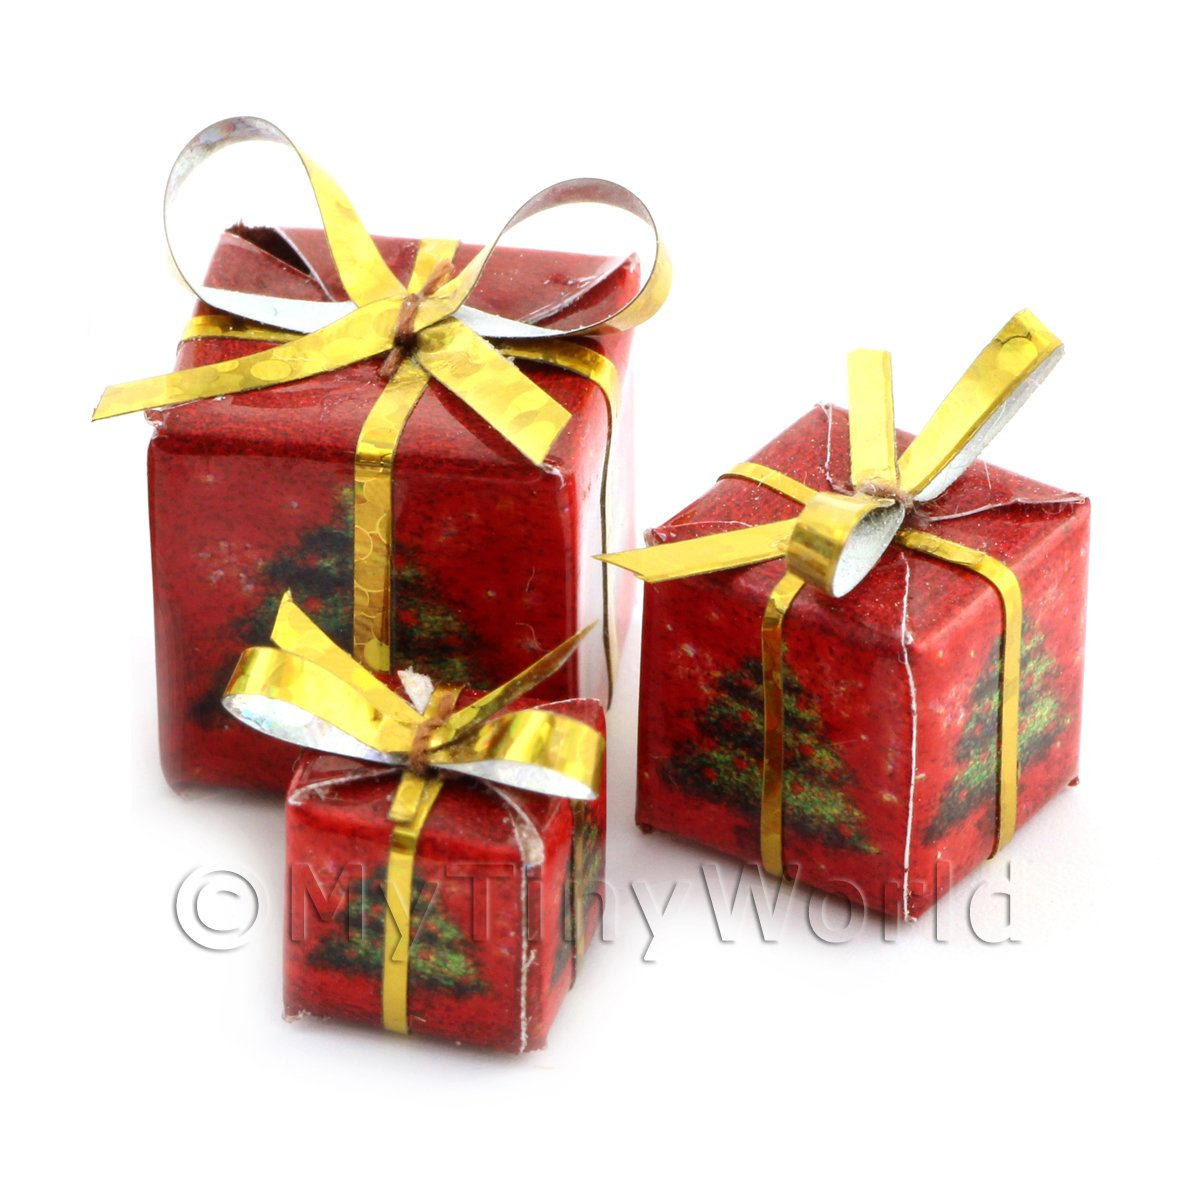 Dolls house Miniature set of 3 Christmas Parcels Style 1